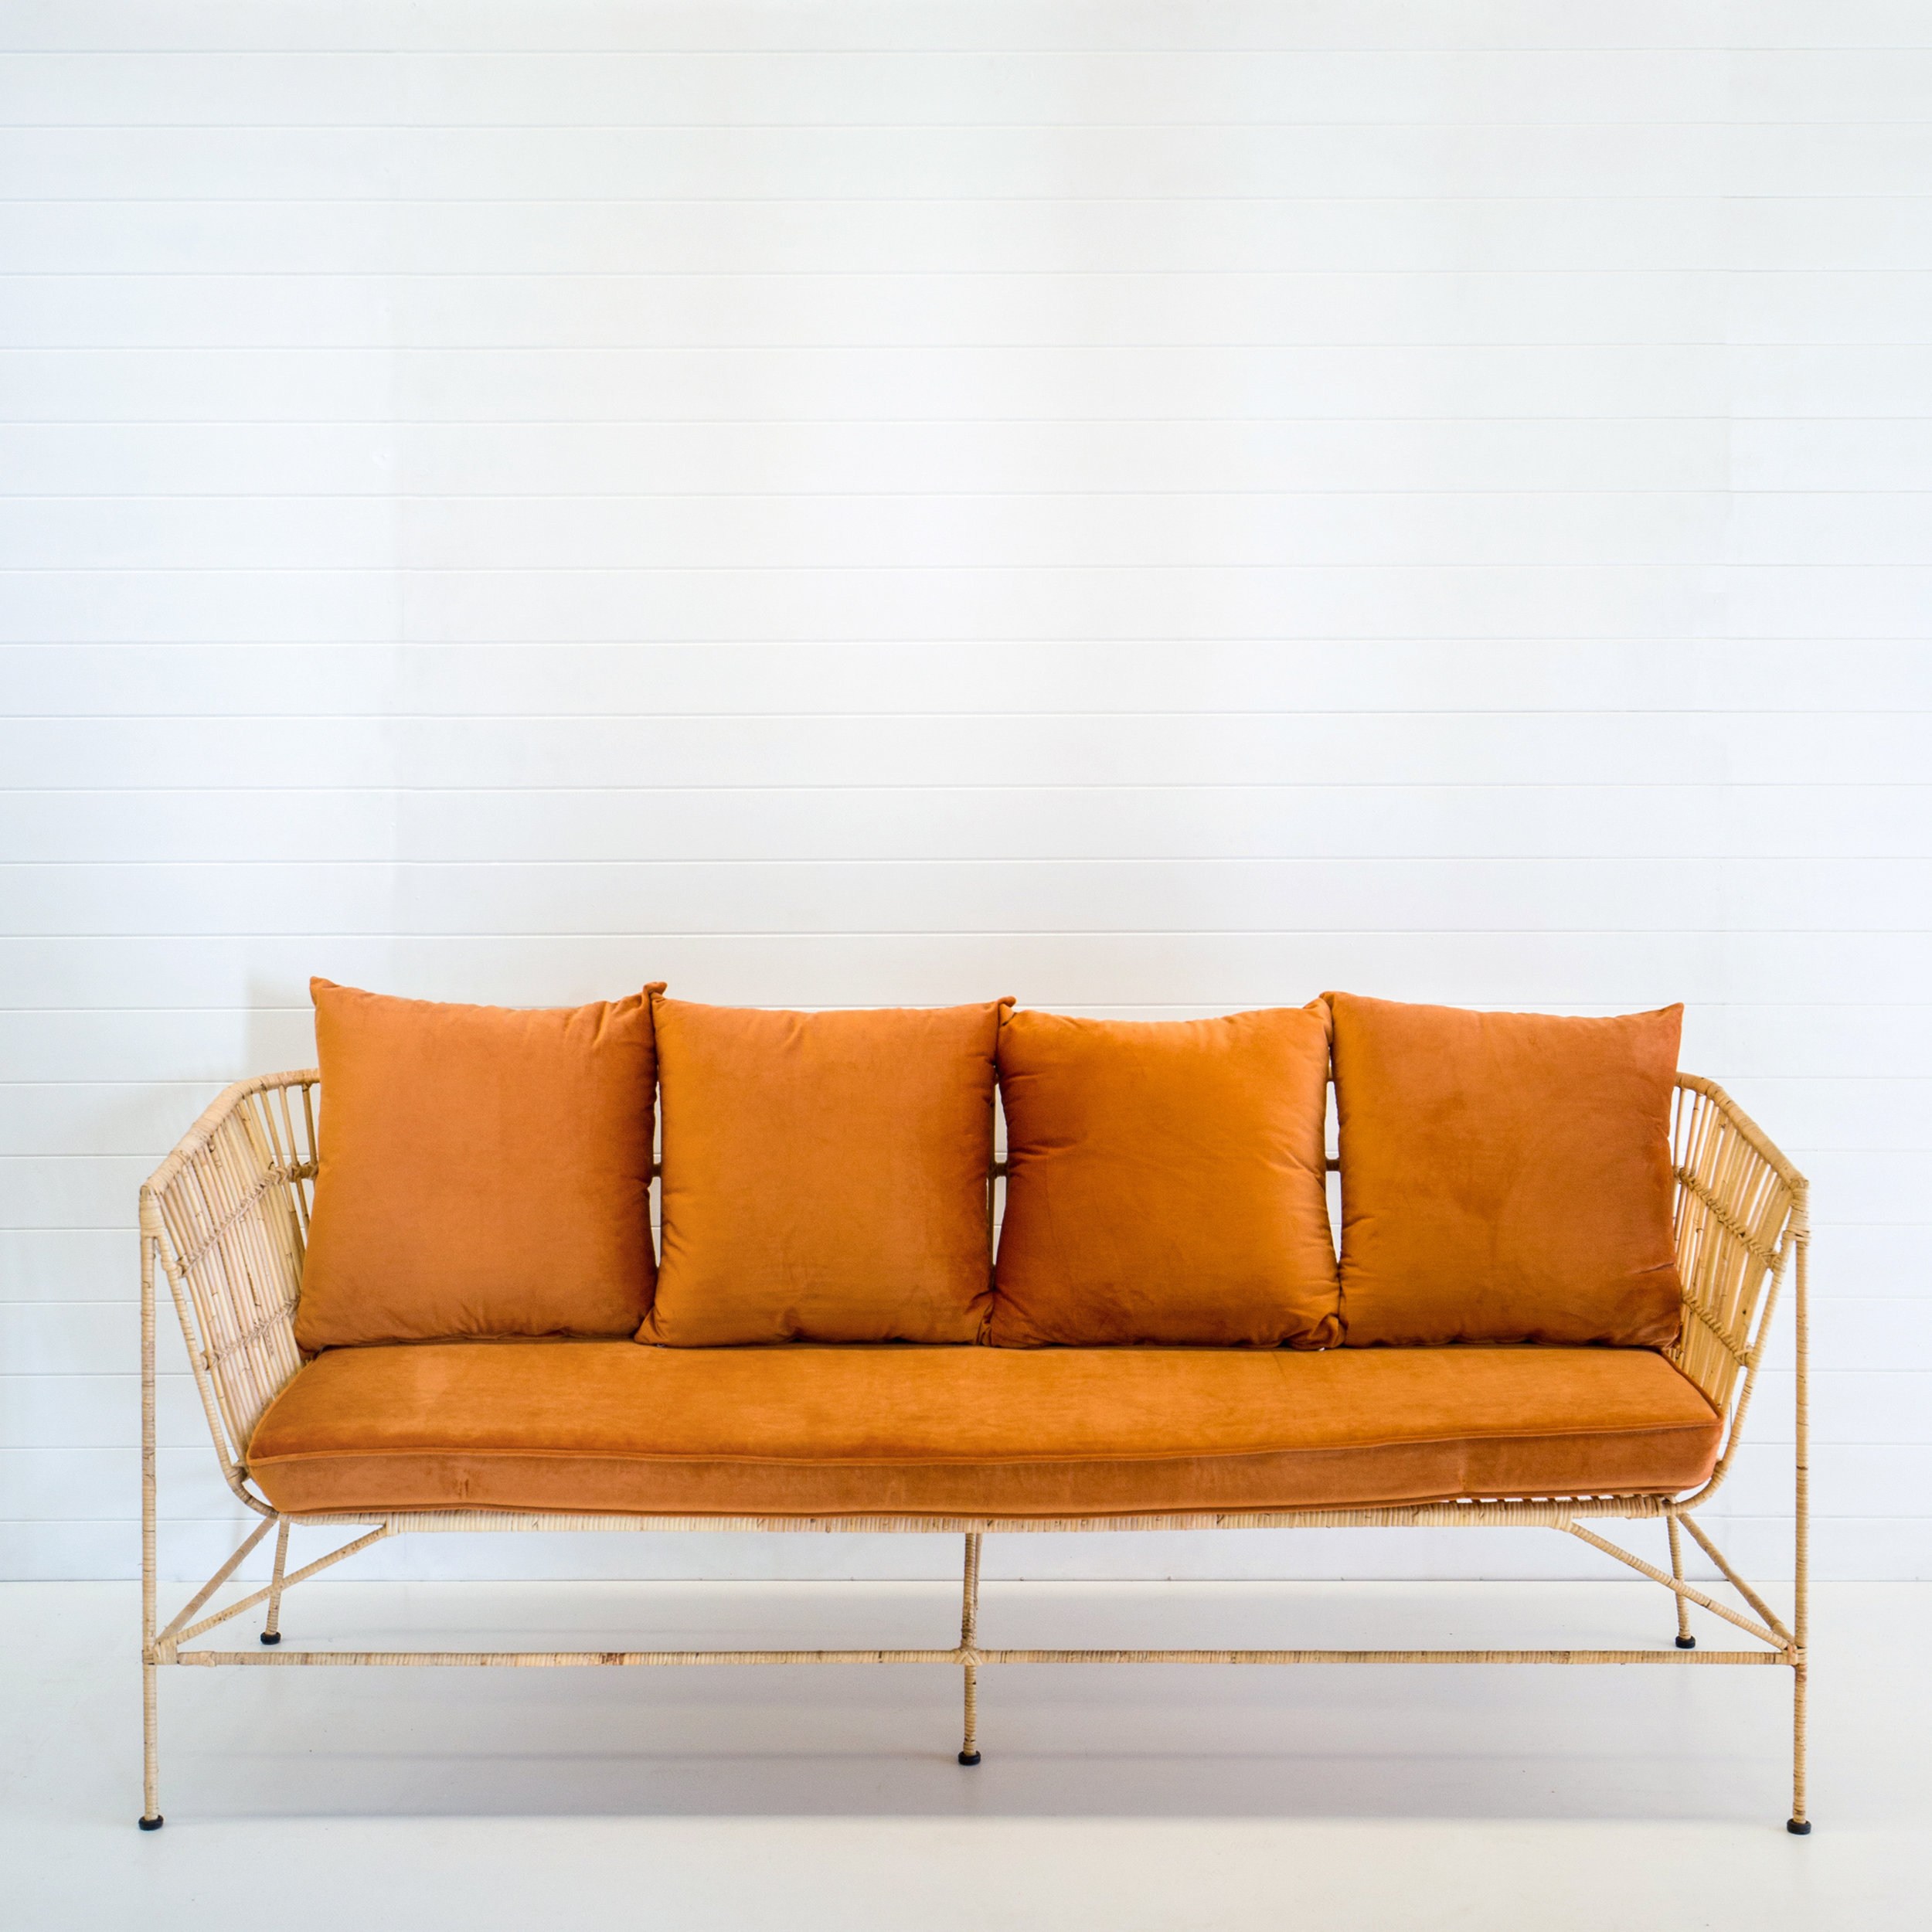 INDIE NATURAL 3-SEATER SOFA WITH RUST V VELVET CUSHION